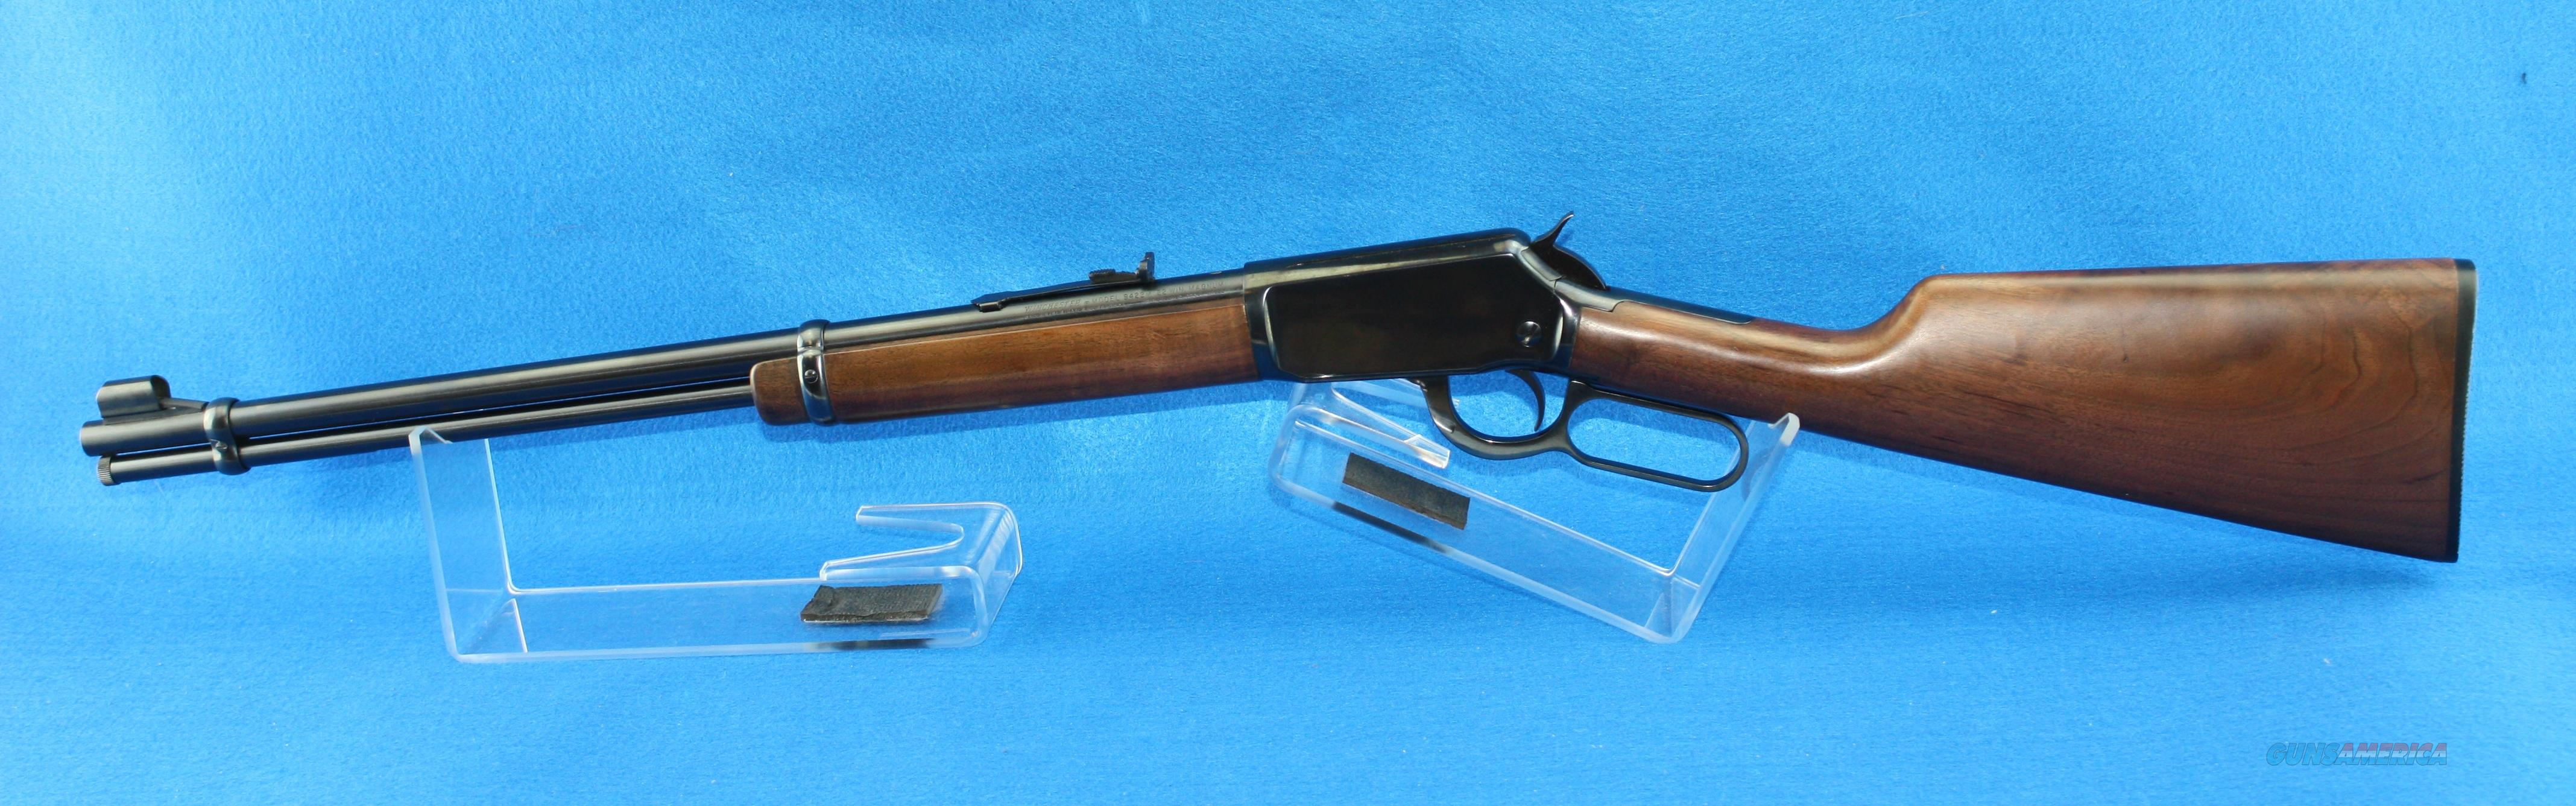 Winchester 9422M  Guns > Rifles > Winchester Rifles - Modern Lever > Model 94 > Post-64